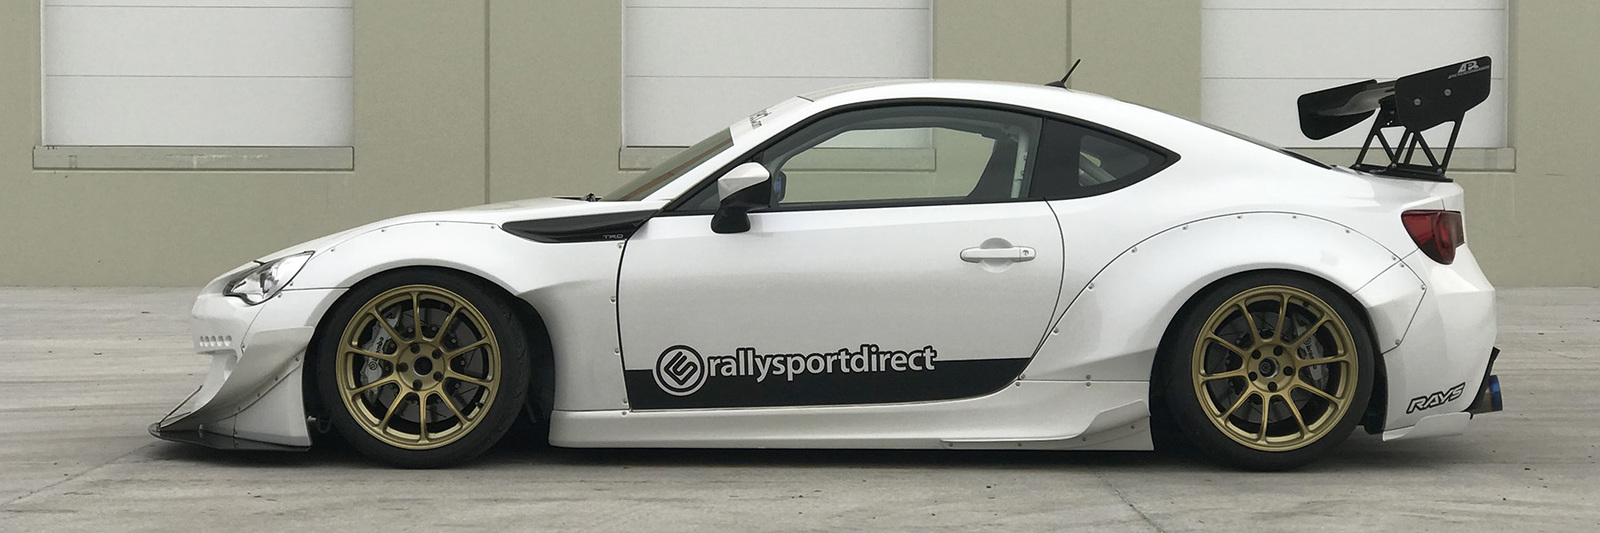 For Sale Rallysport Direct S 2014 Scion Fr S 2015 S550 Mustang